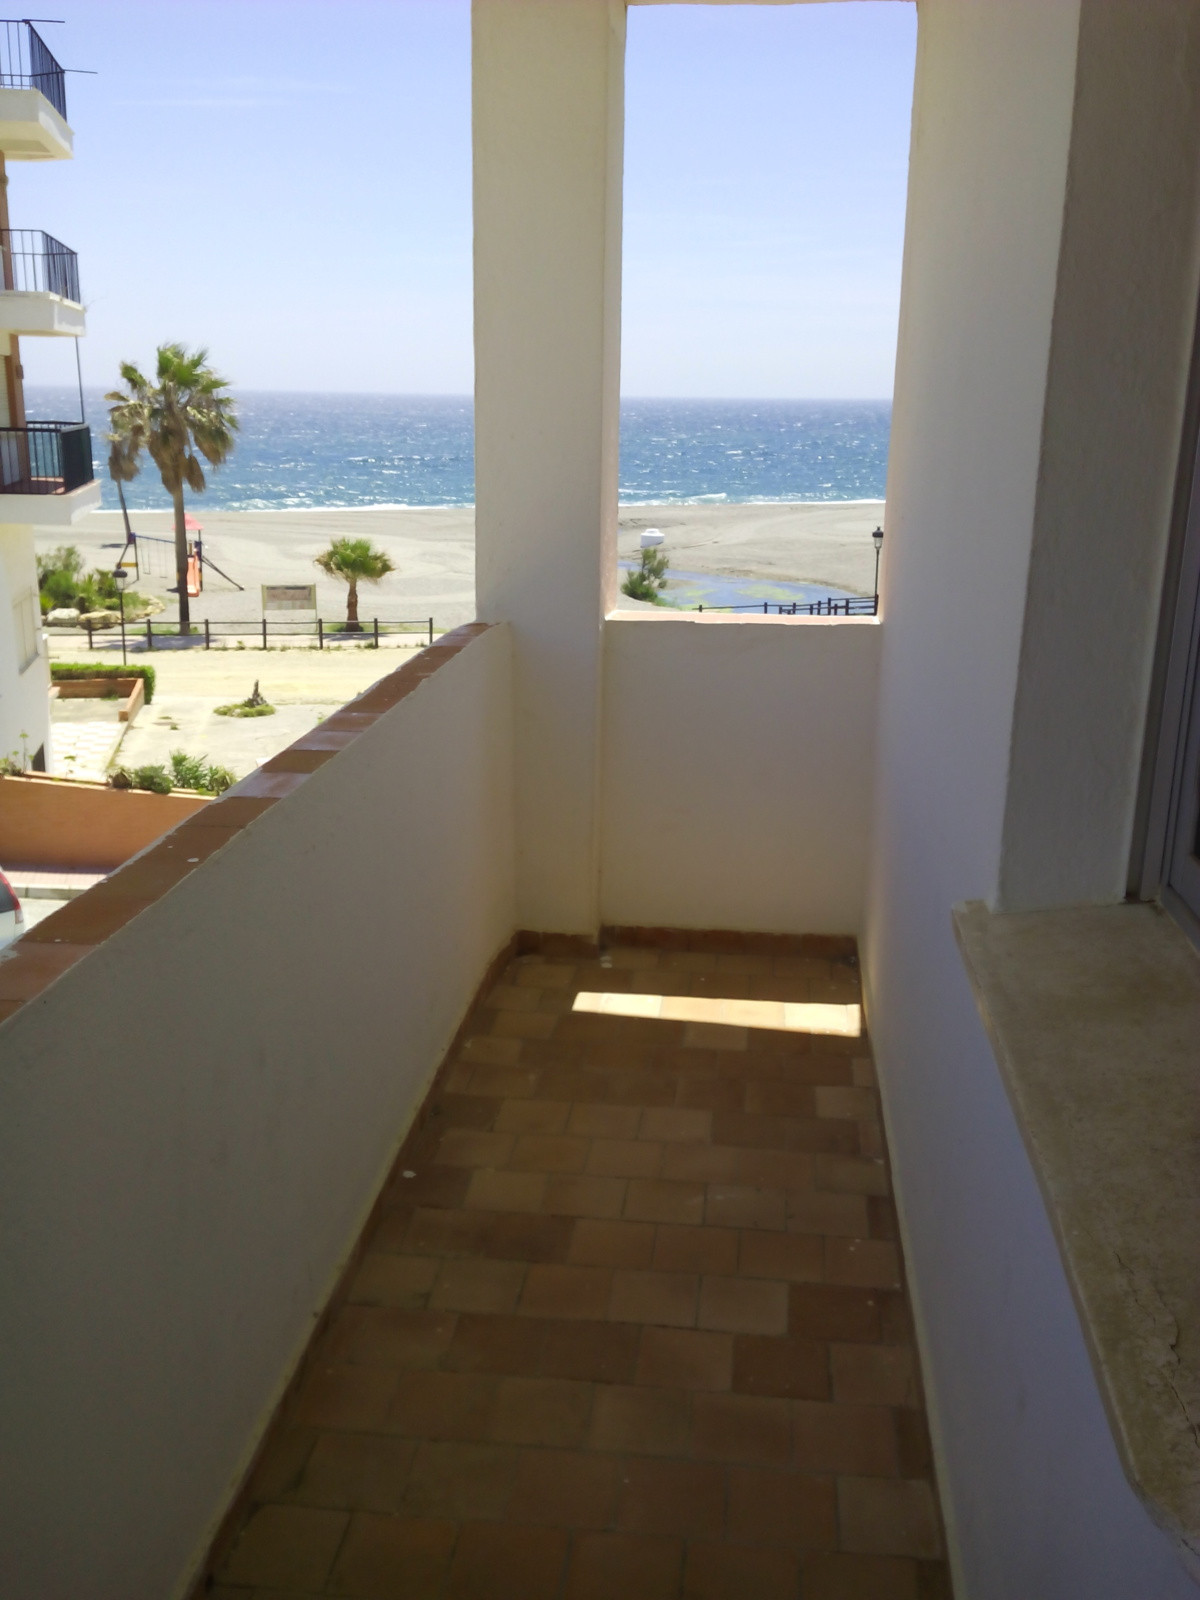 Magnificent apartment of 80 m² in first line of beach and corner next to Puerto de la Duquesa of 3 b, Spain